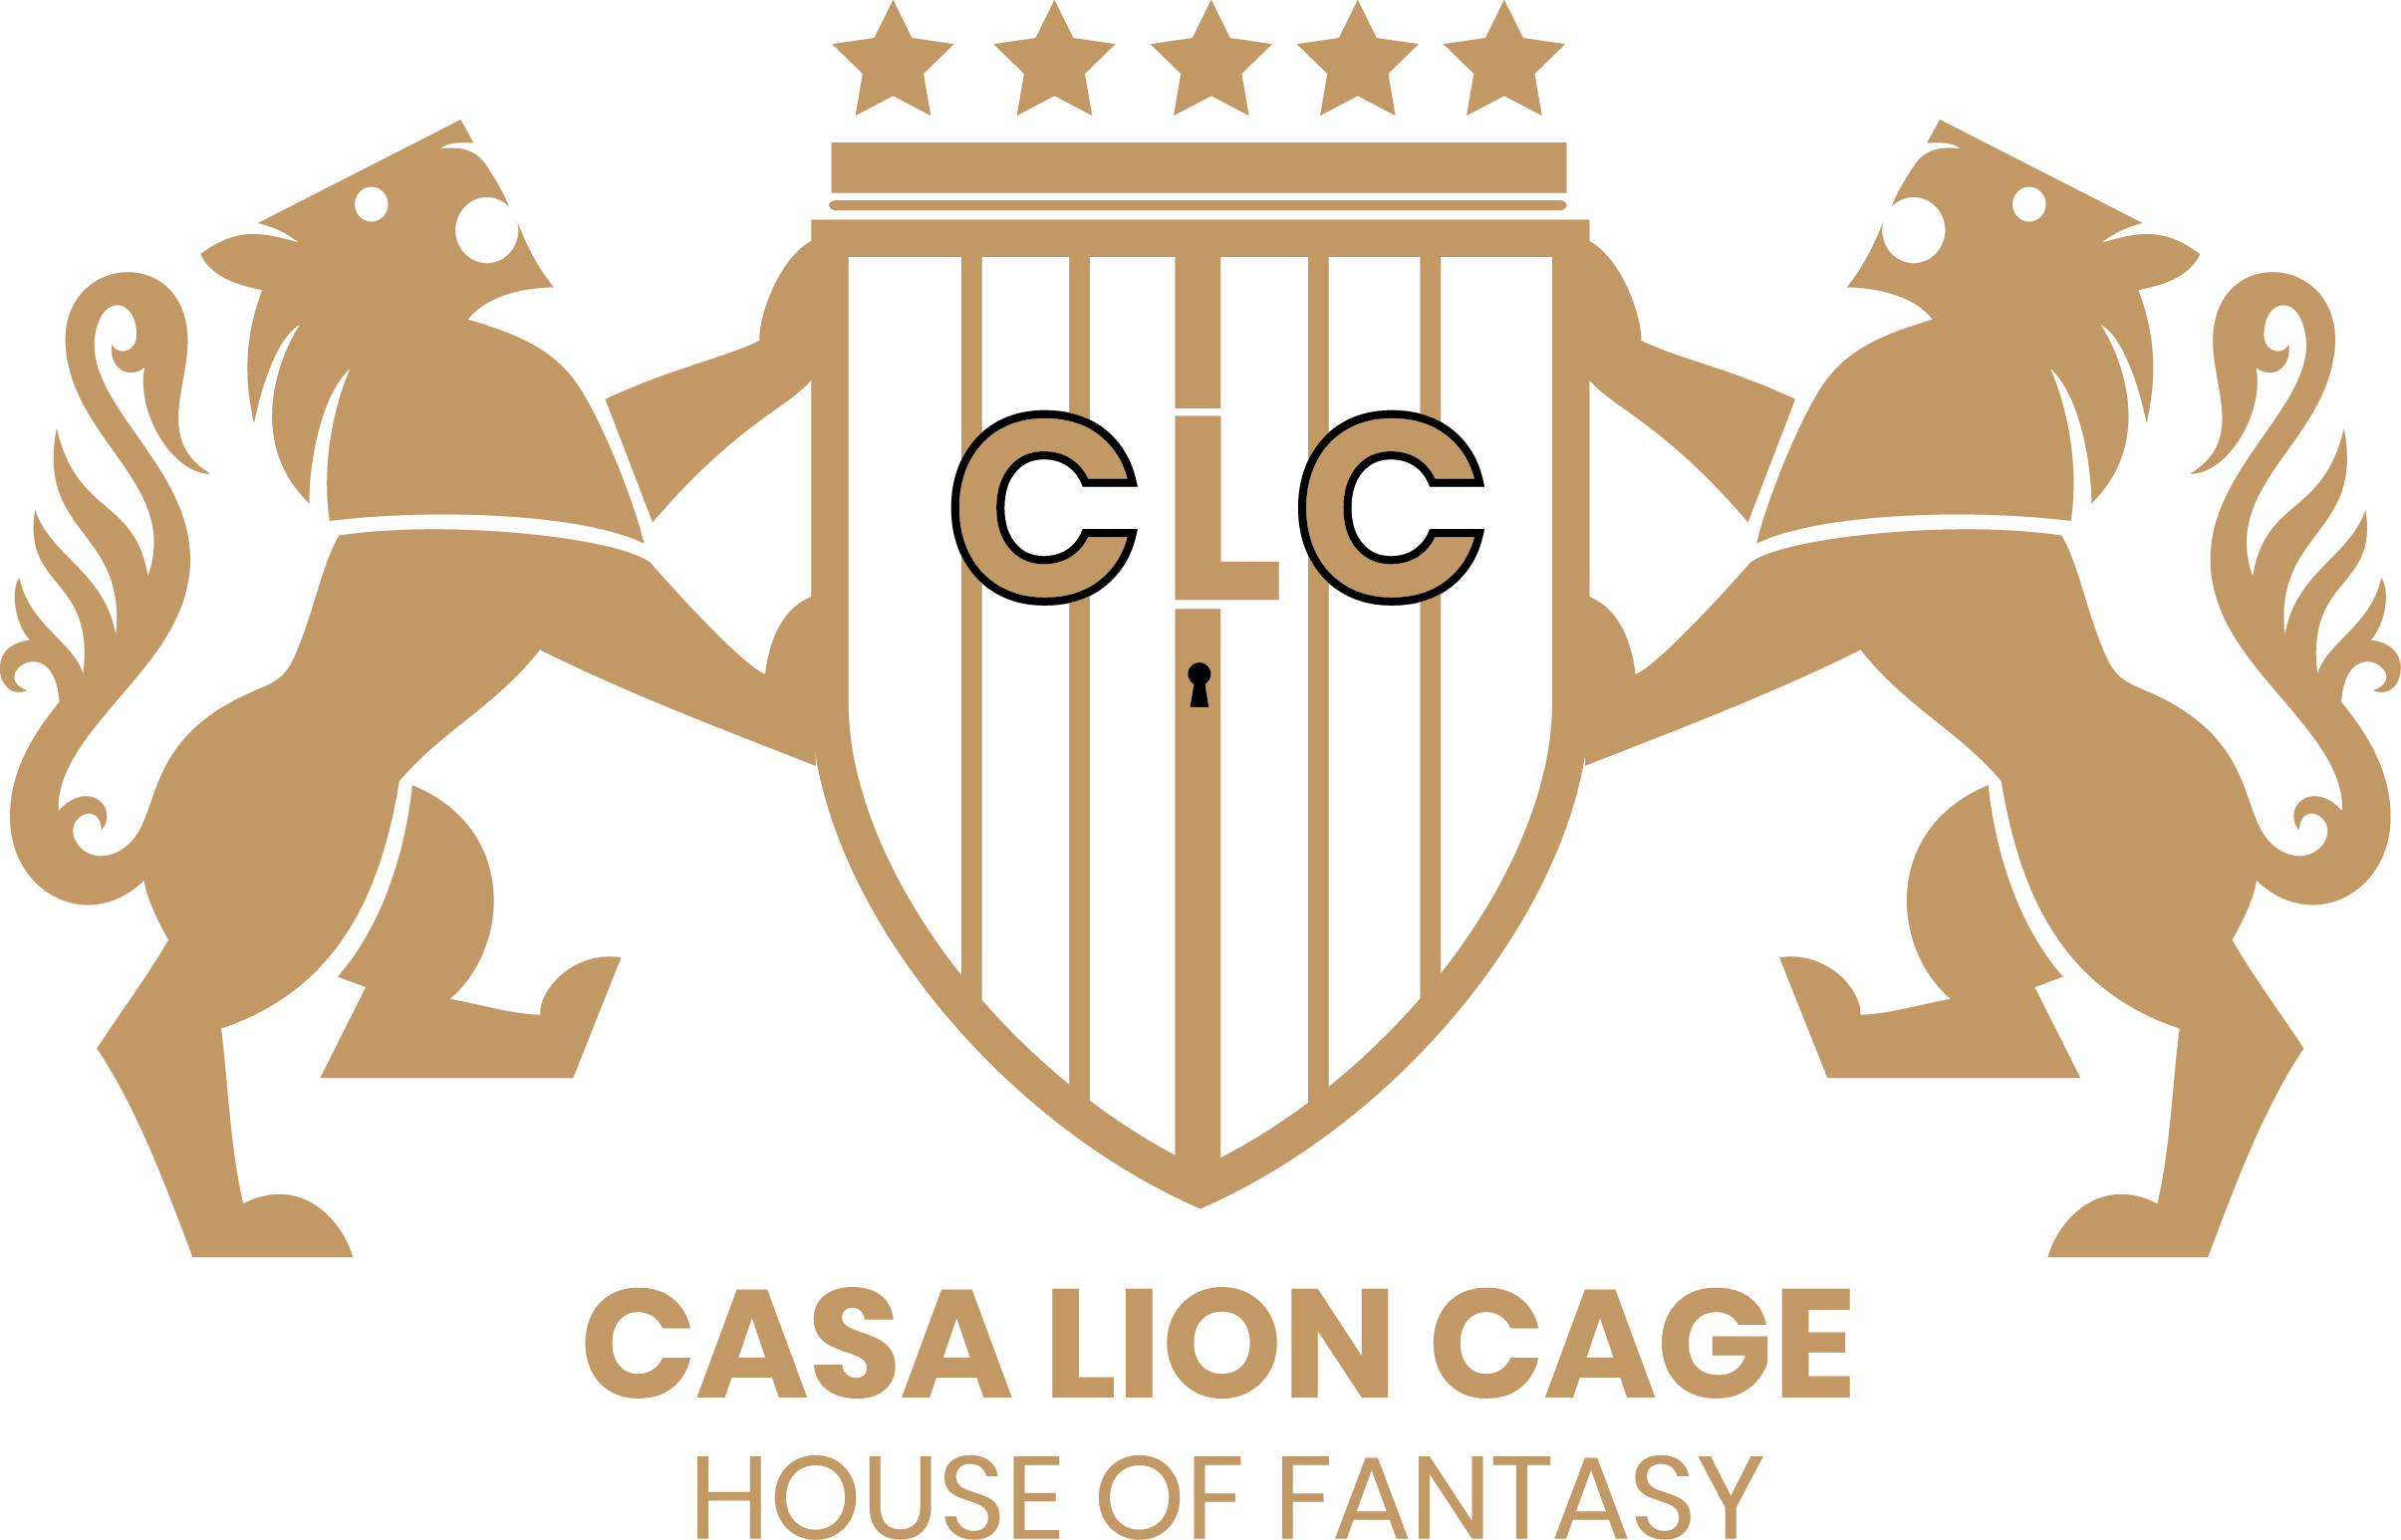 Casa Lion Cage – House of Fantasy